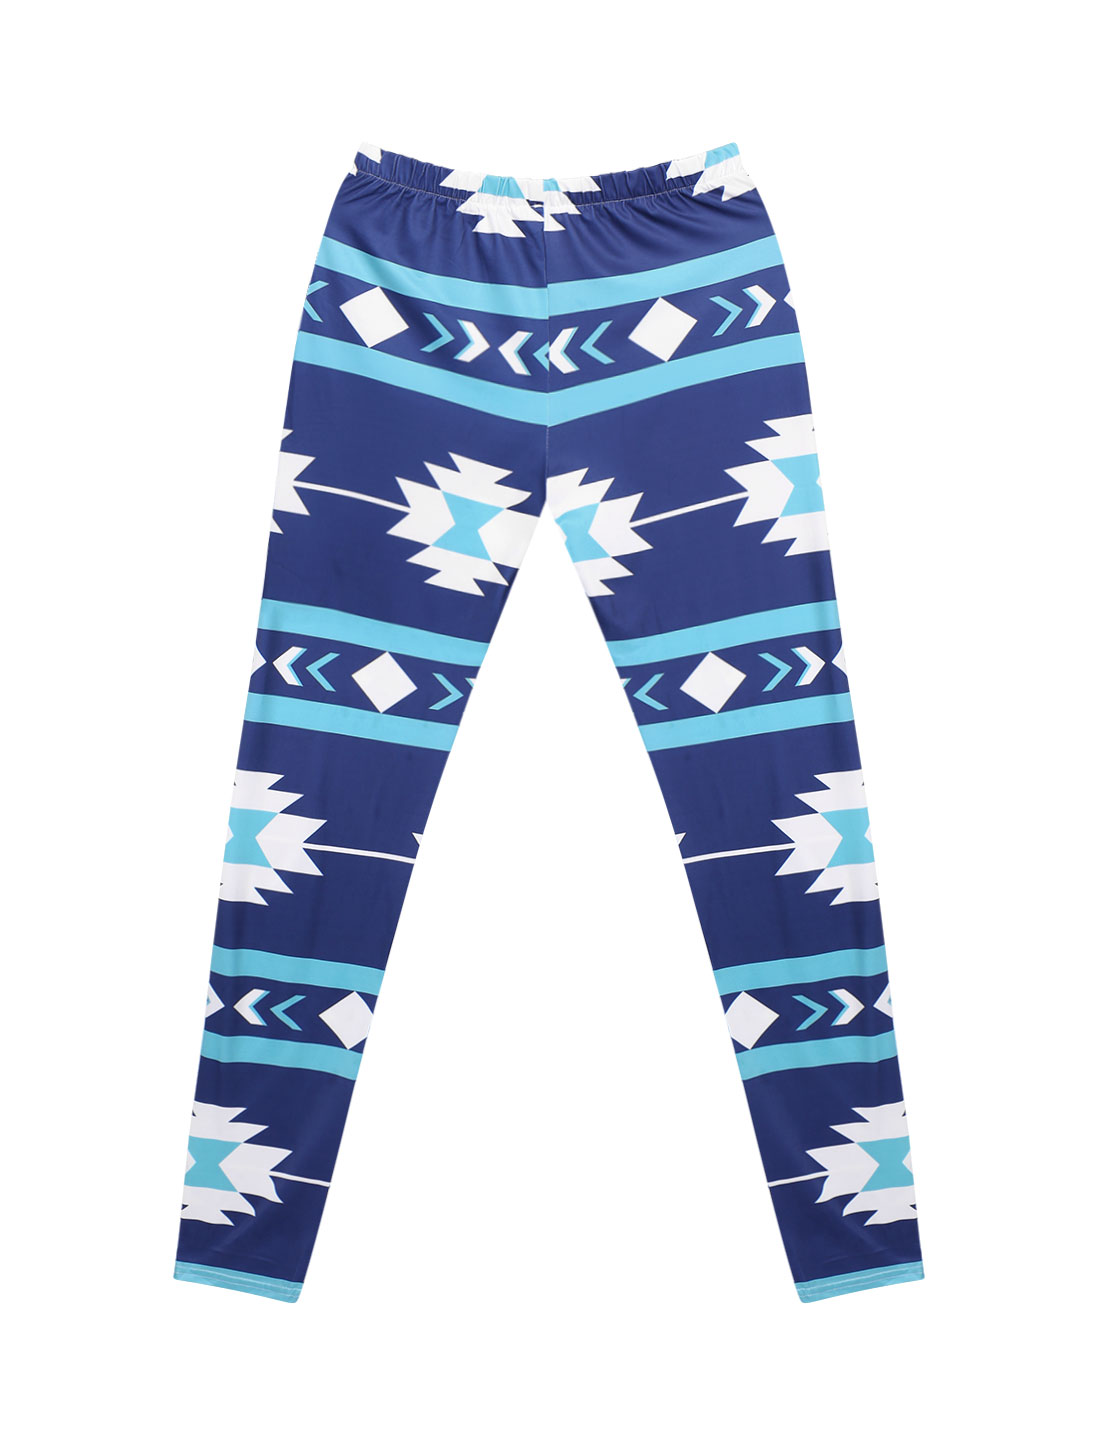 Women High Waist Contrast Color Geometric Prints Skinny Leggings Blue M